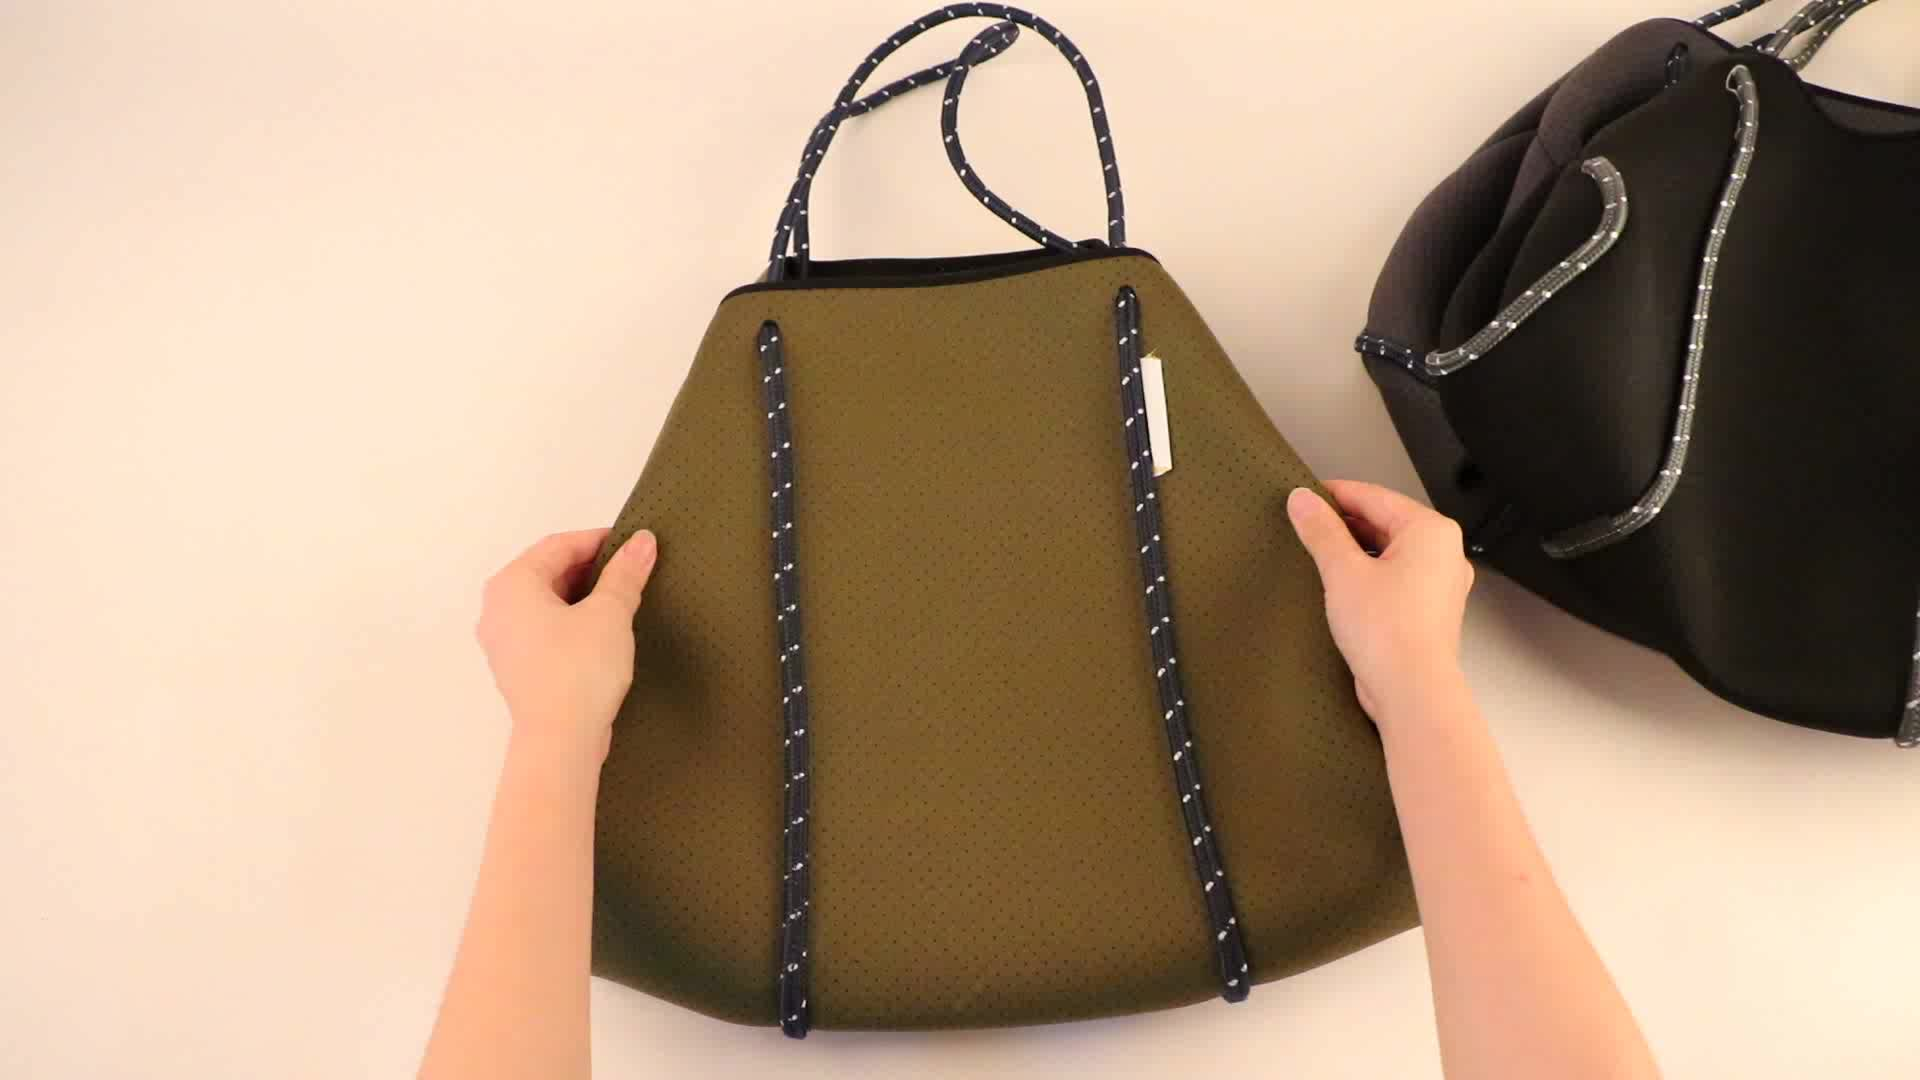 Rope Fashion Neoprene Tote Bag With Punched Holes